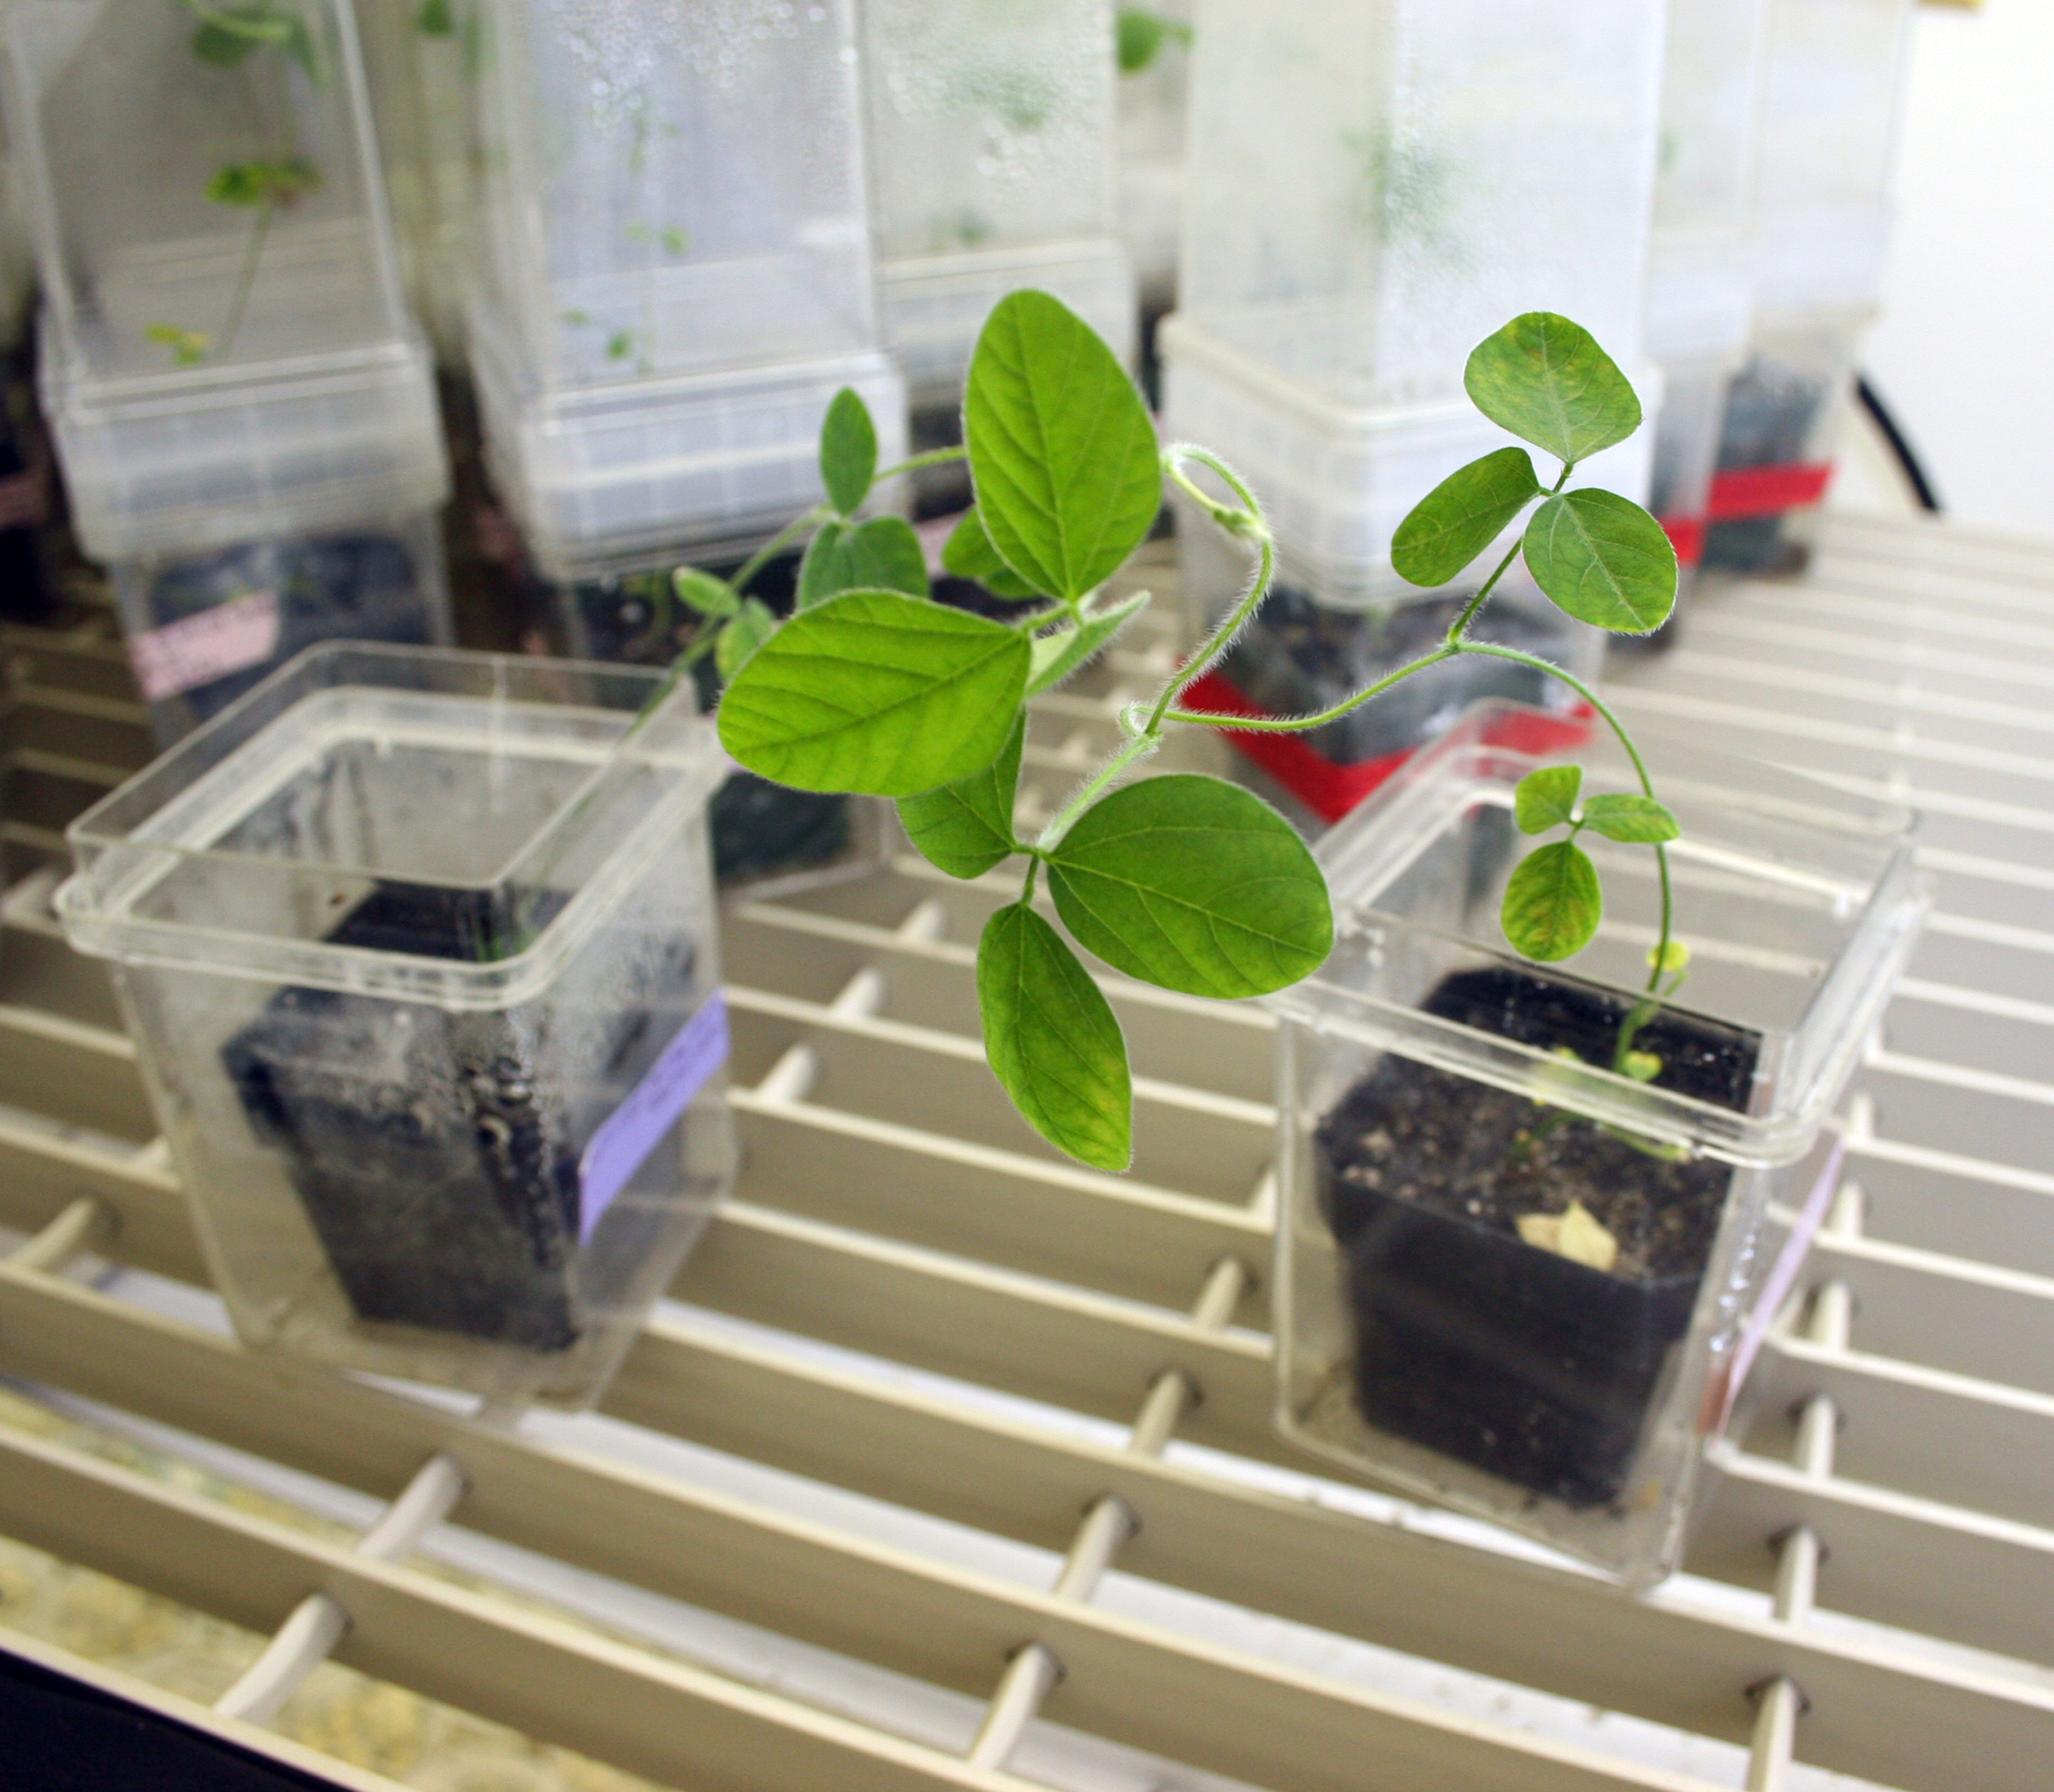 A soybean plant flourishes under the grow lights in Wayne Parrott's lab. Parrott is a crop and soil sciences professor at the University of Georgia College of Agricultural and Environmental Sciences.